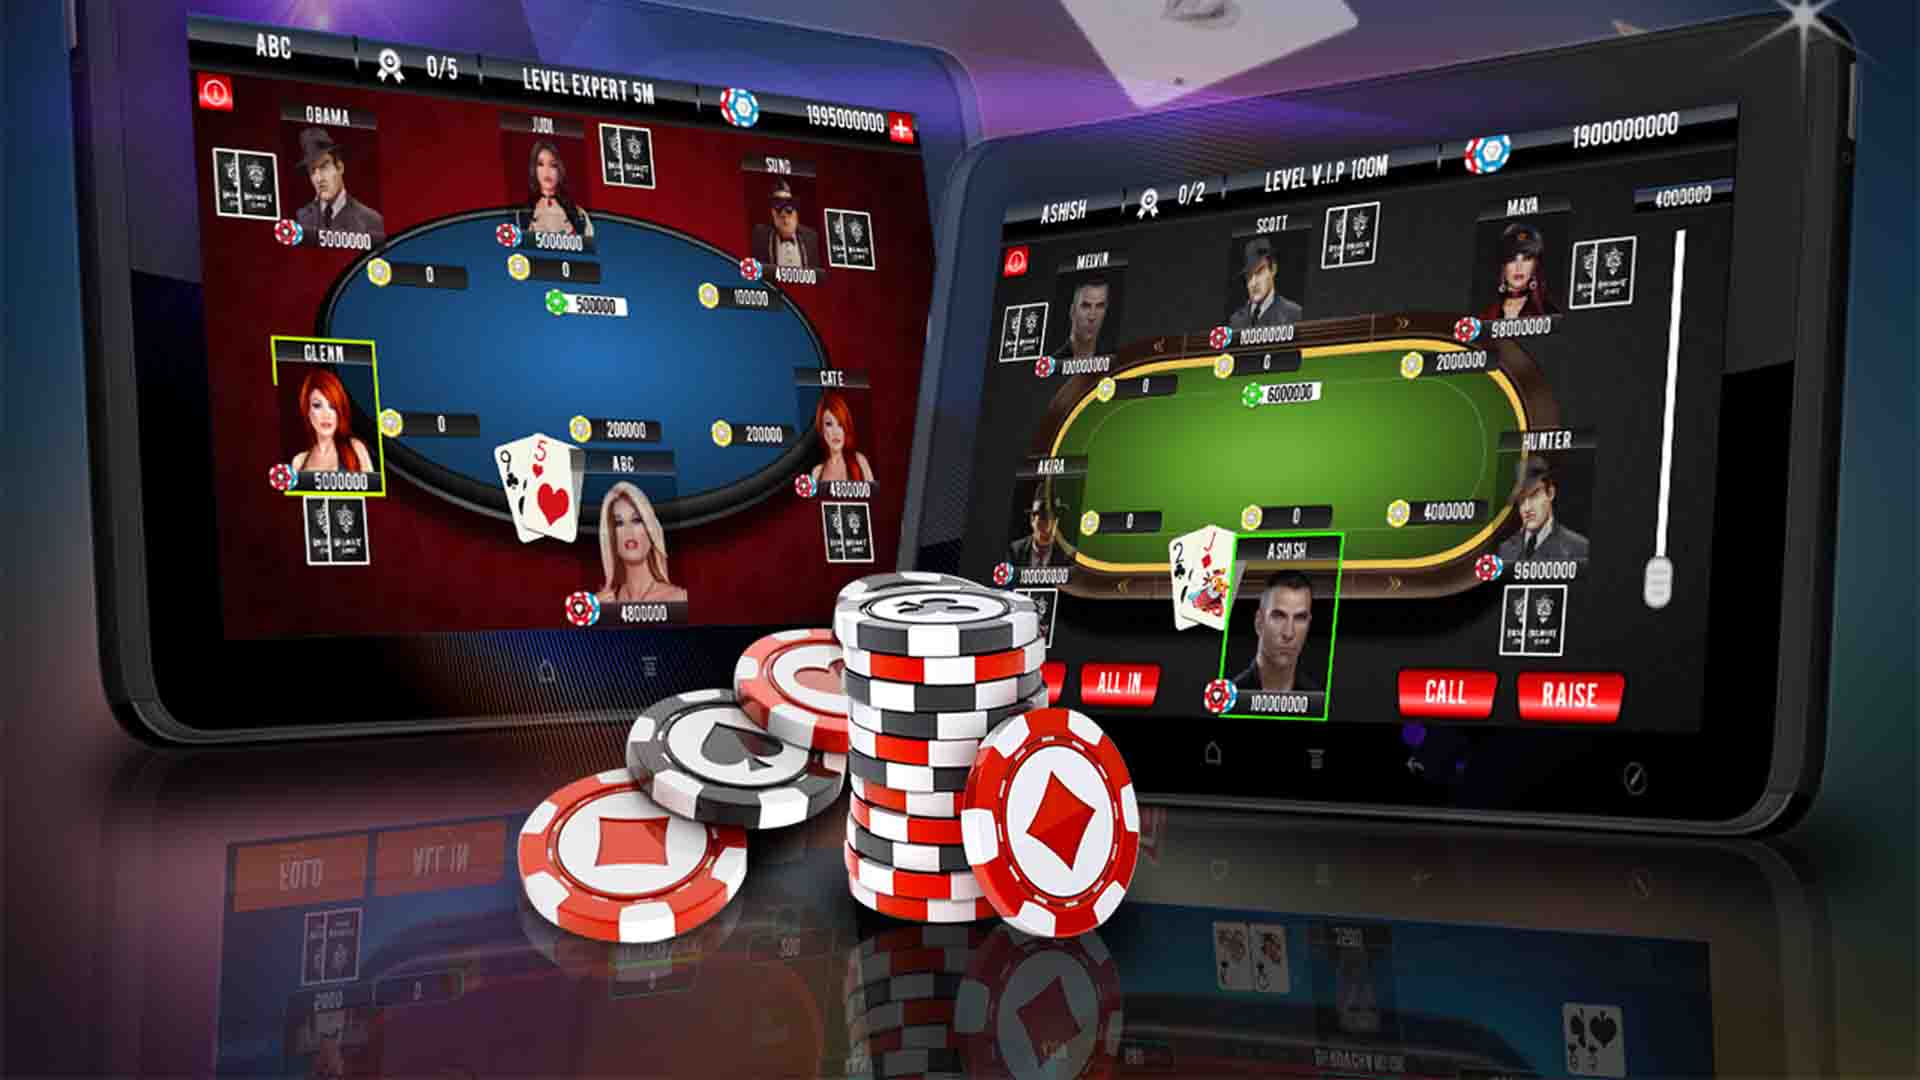 Top 5 reasons for using situs poker online